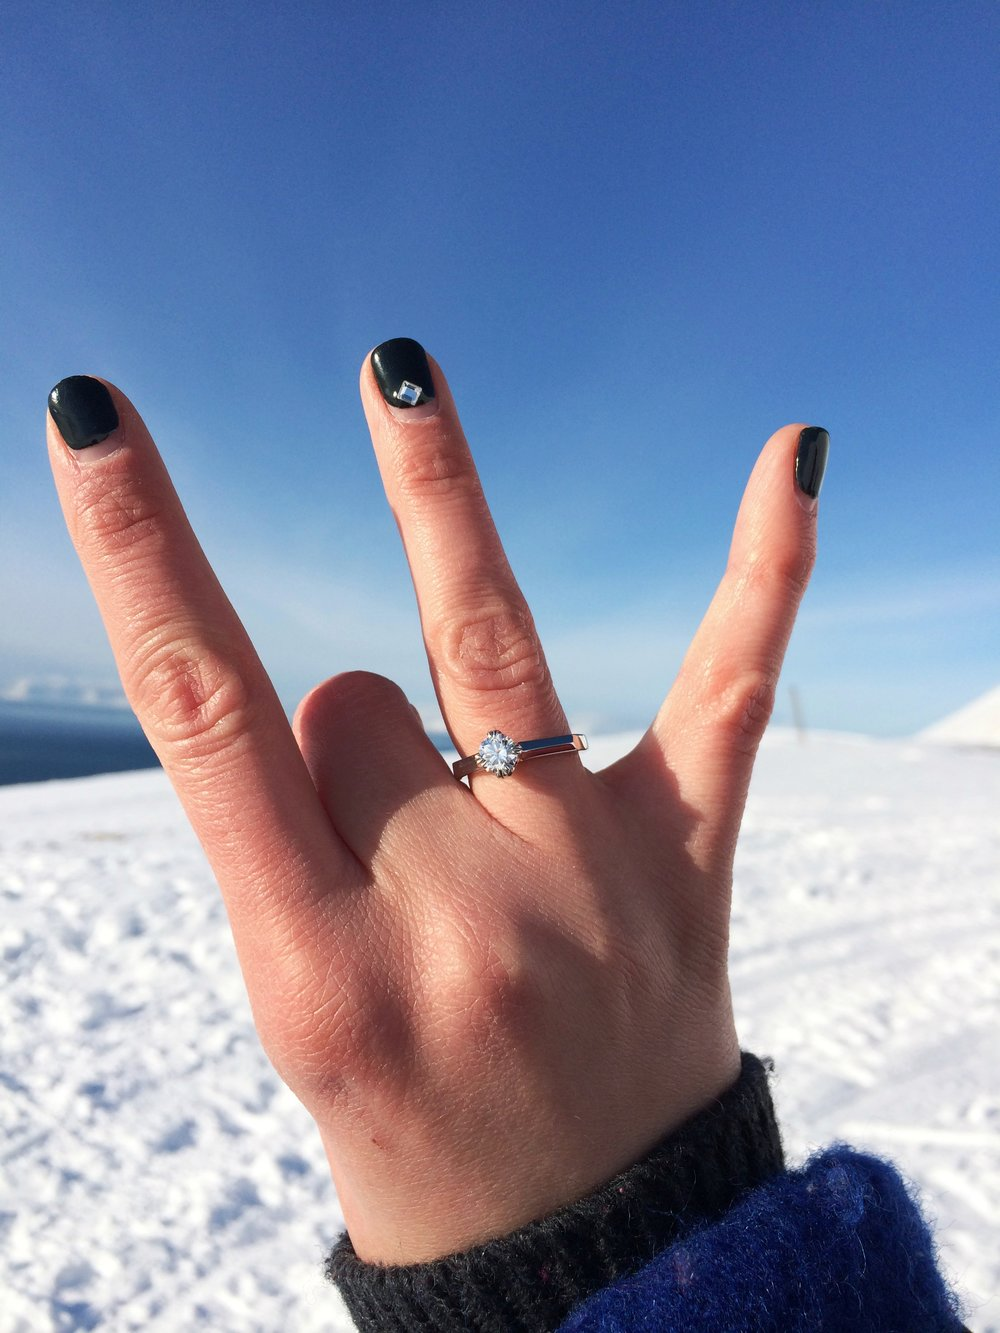 Proposal at Svalbard, Artic circle